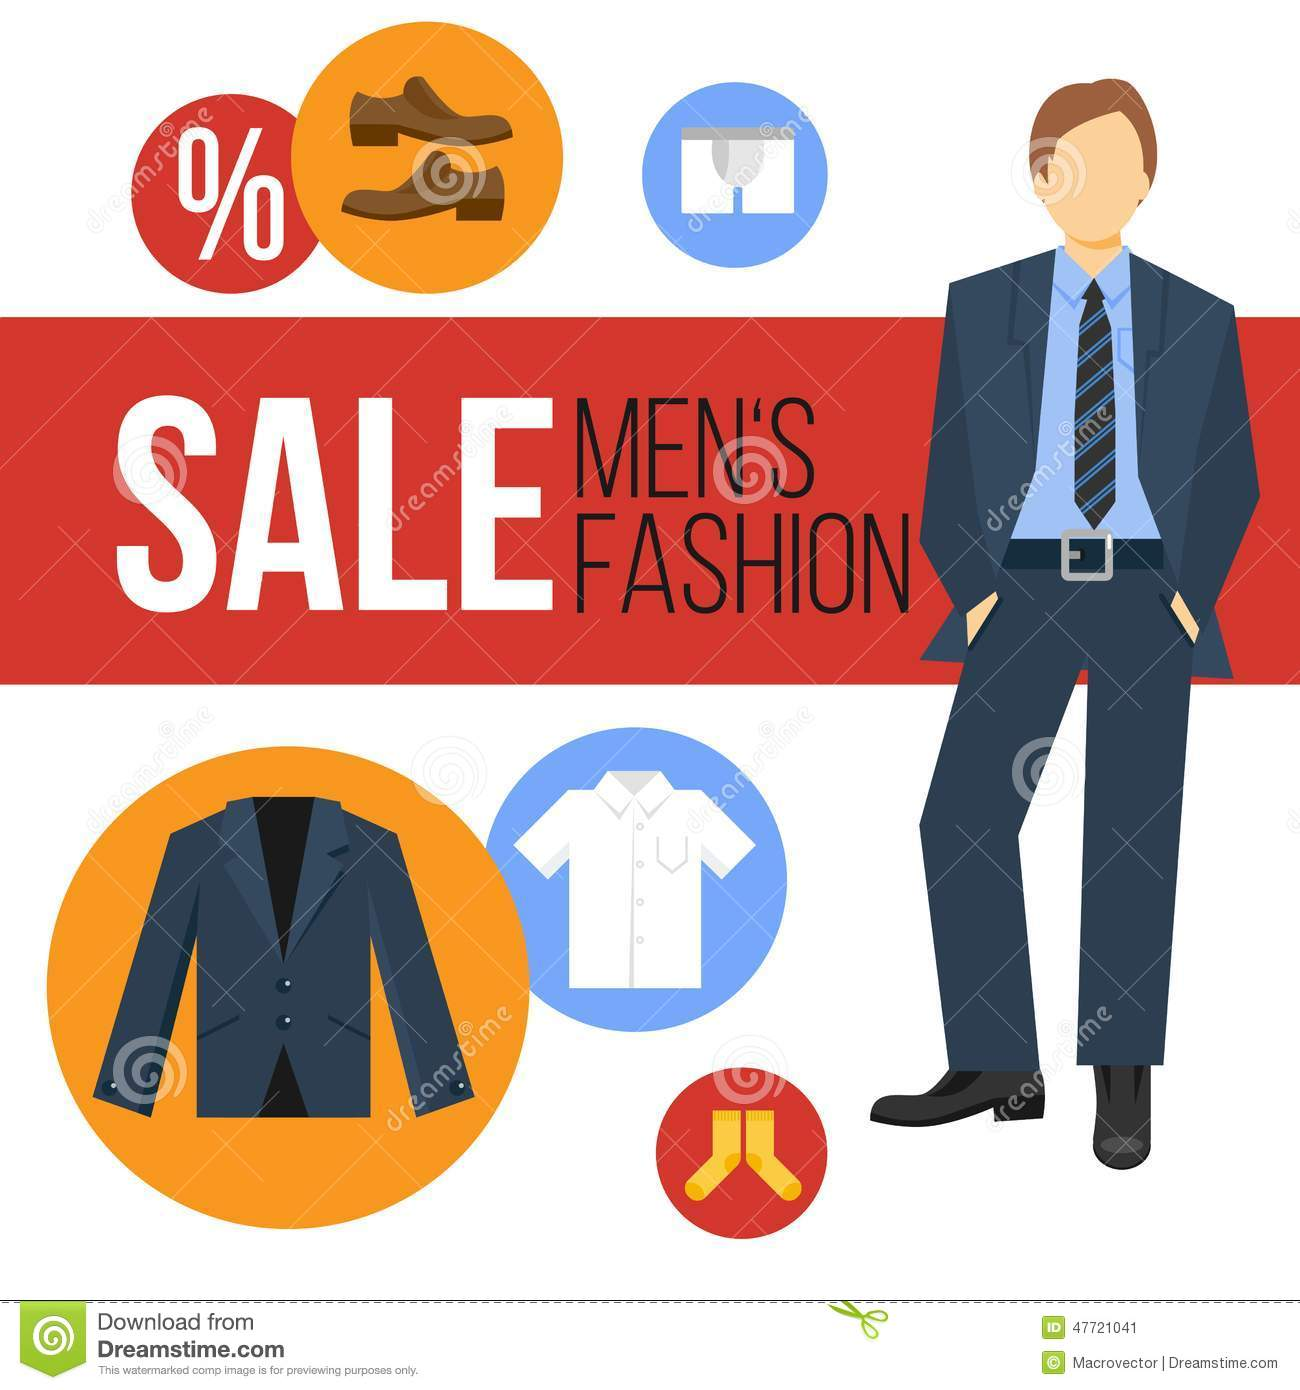 ca35a8aee3 Men Fashion Clothes Sale stock vector. Illustration of collection ...